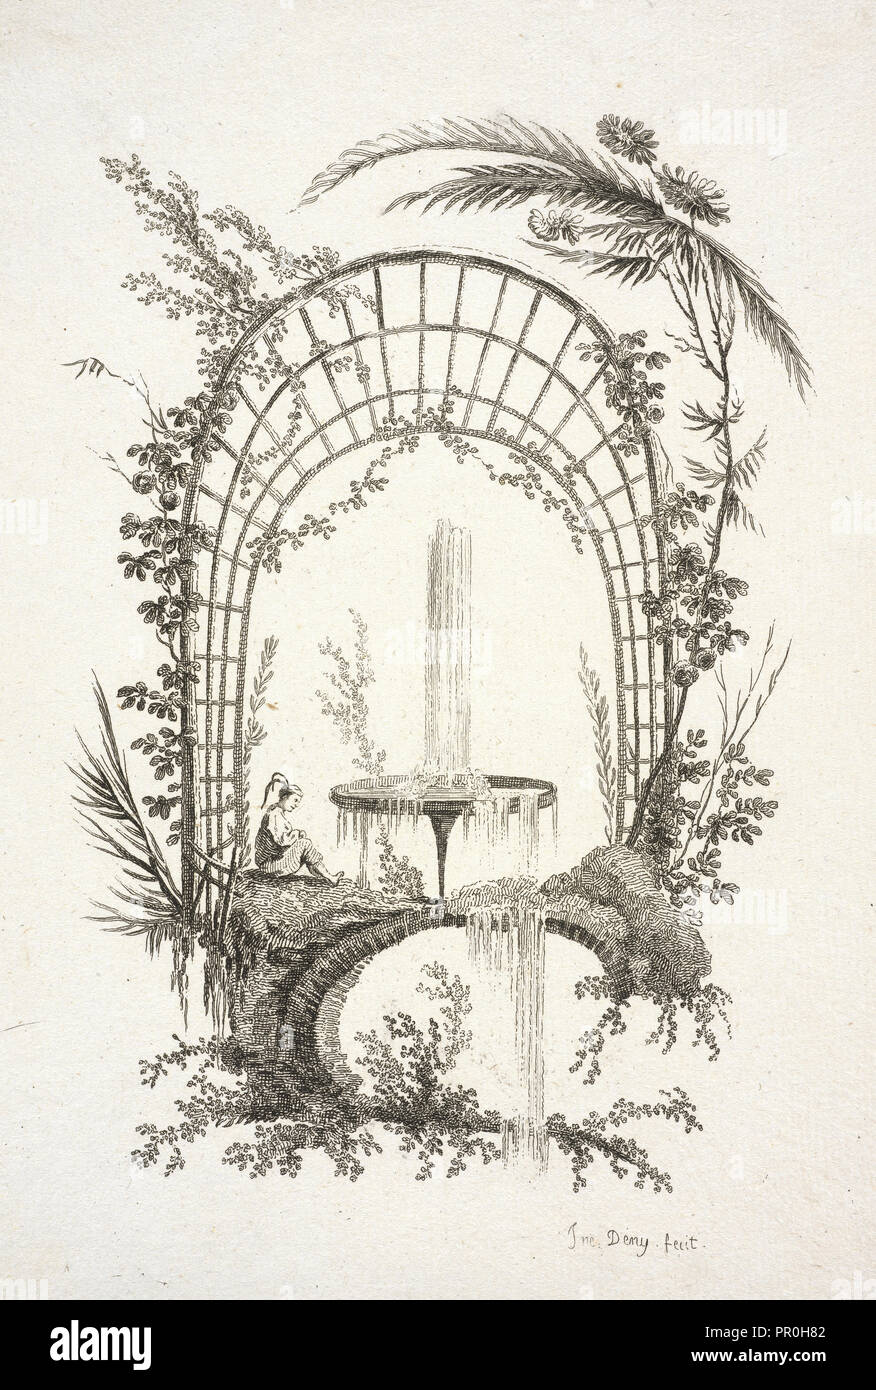 Fountain, Jean Pillement etchings, Deny, Jeanne, 1749-ca. 1815, Pillement, Jean, 1728-1808, Etching, 1770, Jne. Deny fecit - Stock Image